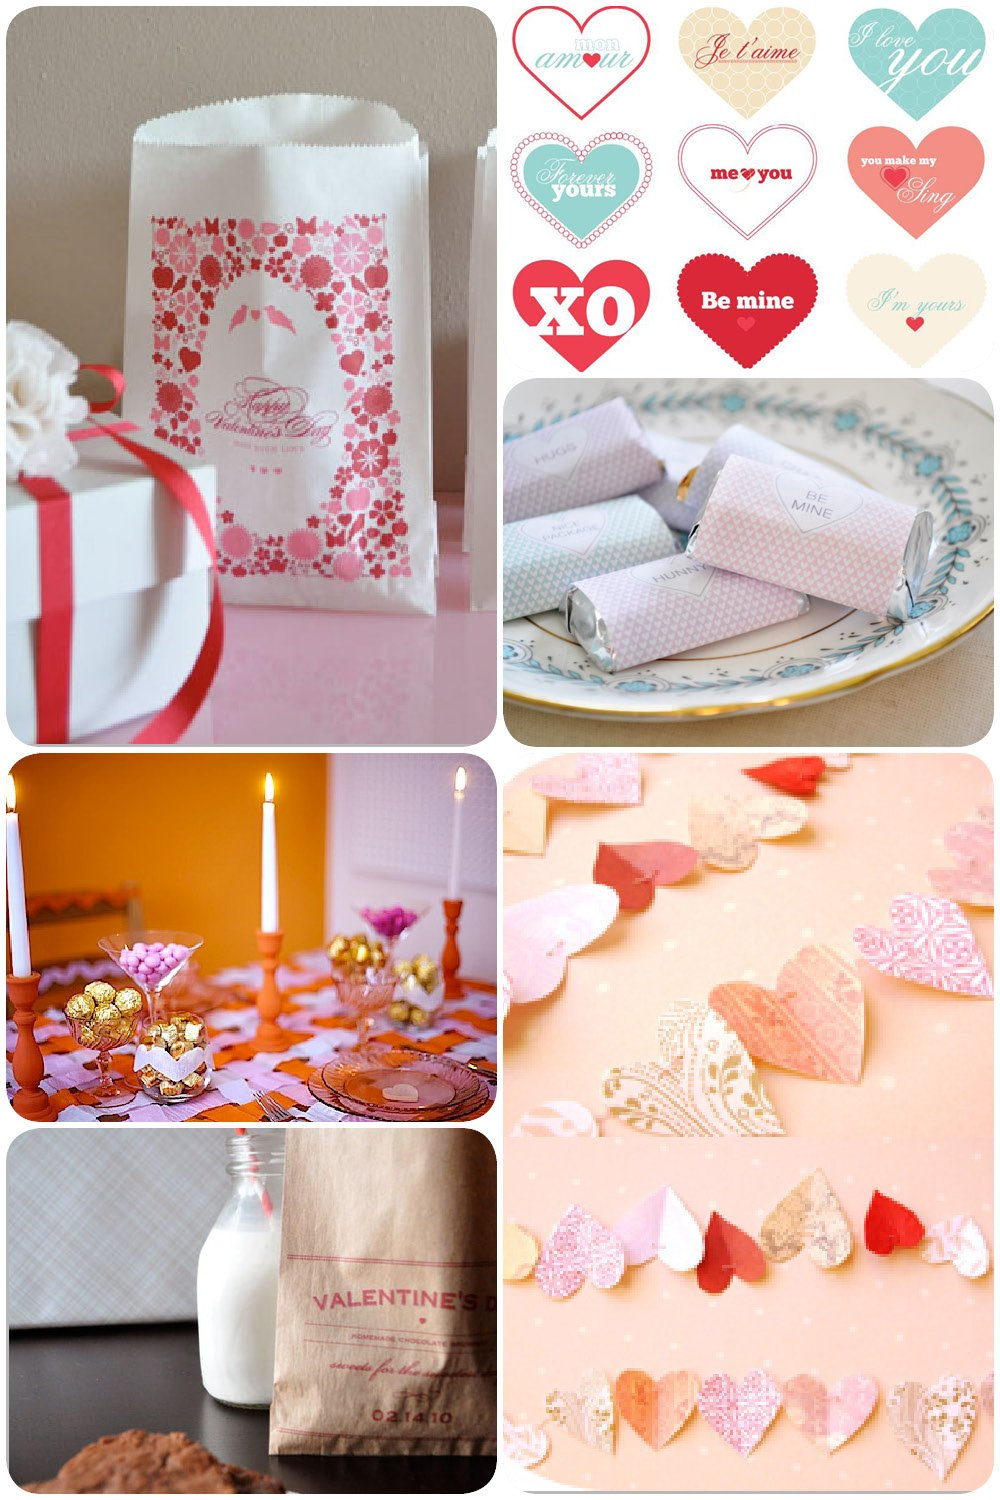 Valentine diys design templates for Inspirational valentine crafts